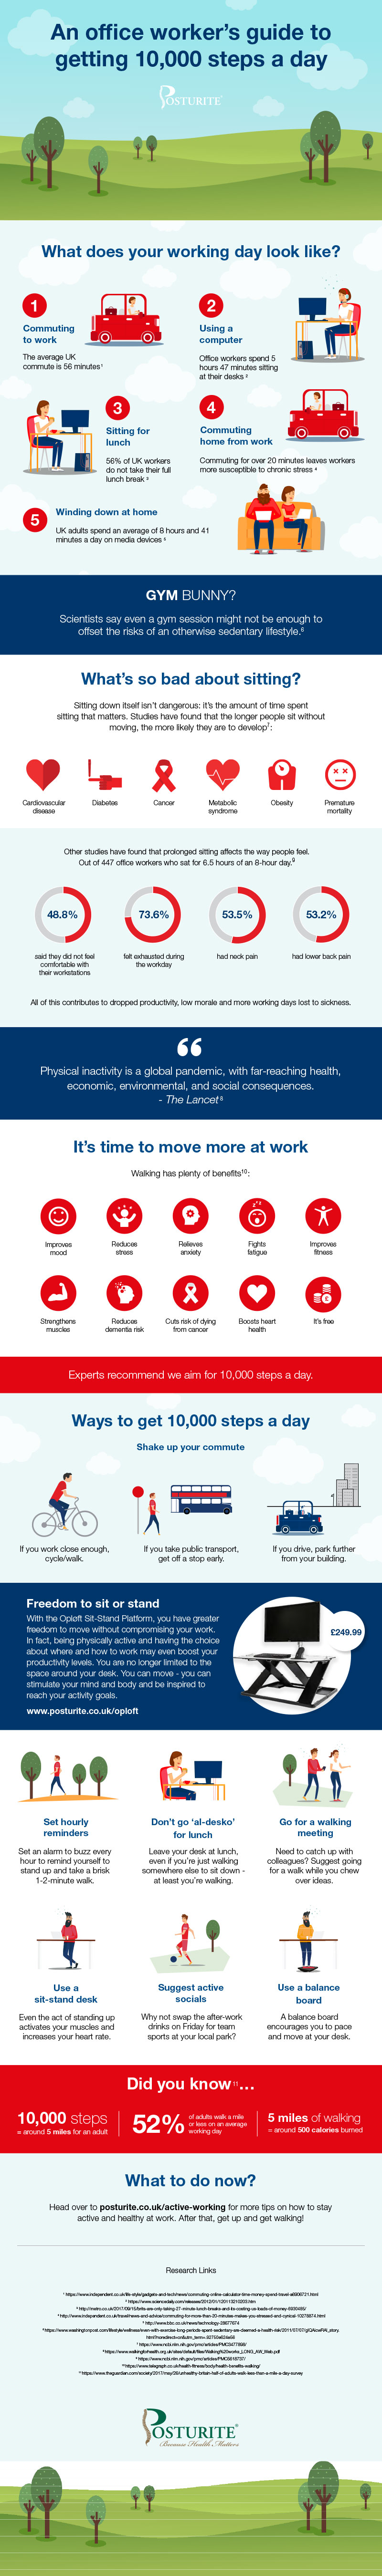 How to get 10,000 steps a day - infographic